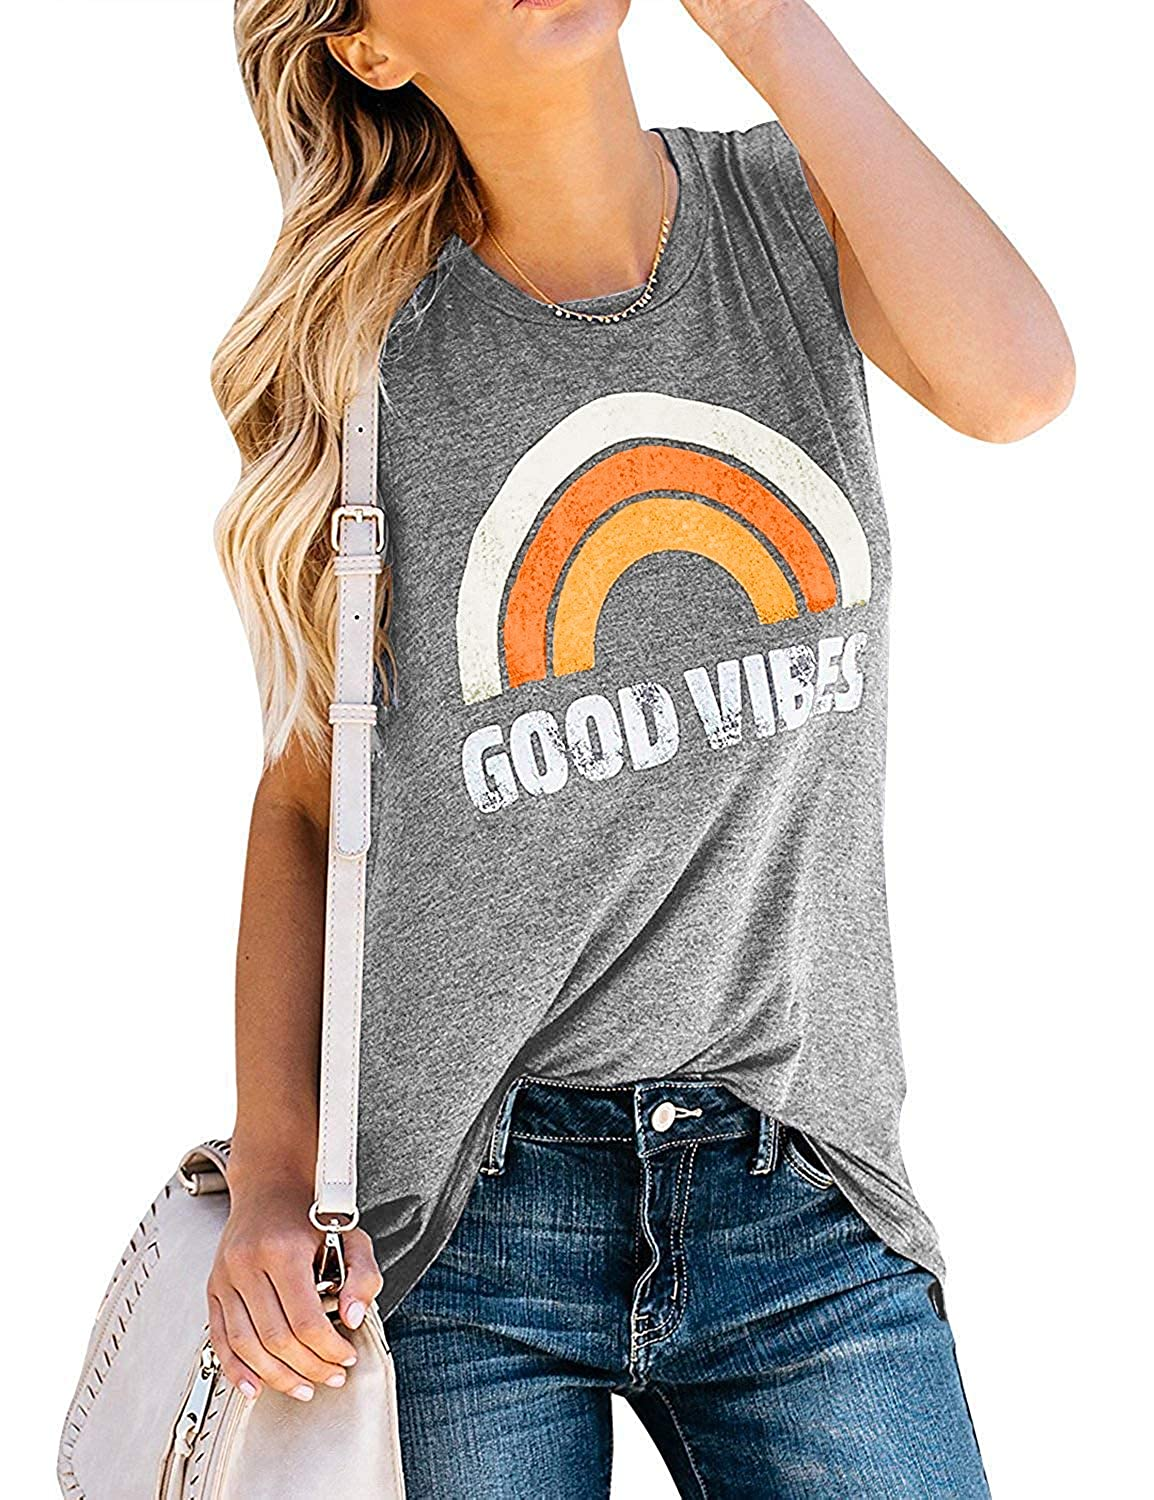 Women's 70s Shirts, Blouses, Hippie Tops Hount Womens Good Vibes Tank Tops Loose Fit Casual Sleeveless Top T Shirt $21.99 AT vintagedancer.com